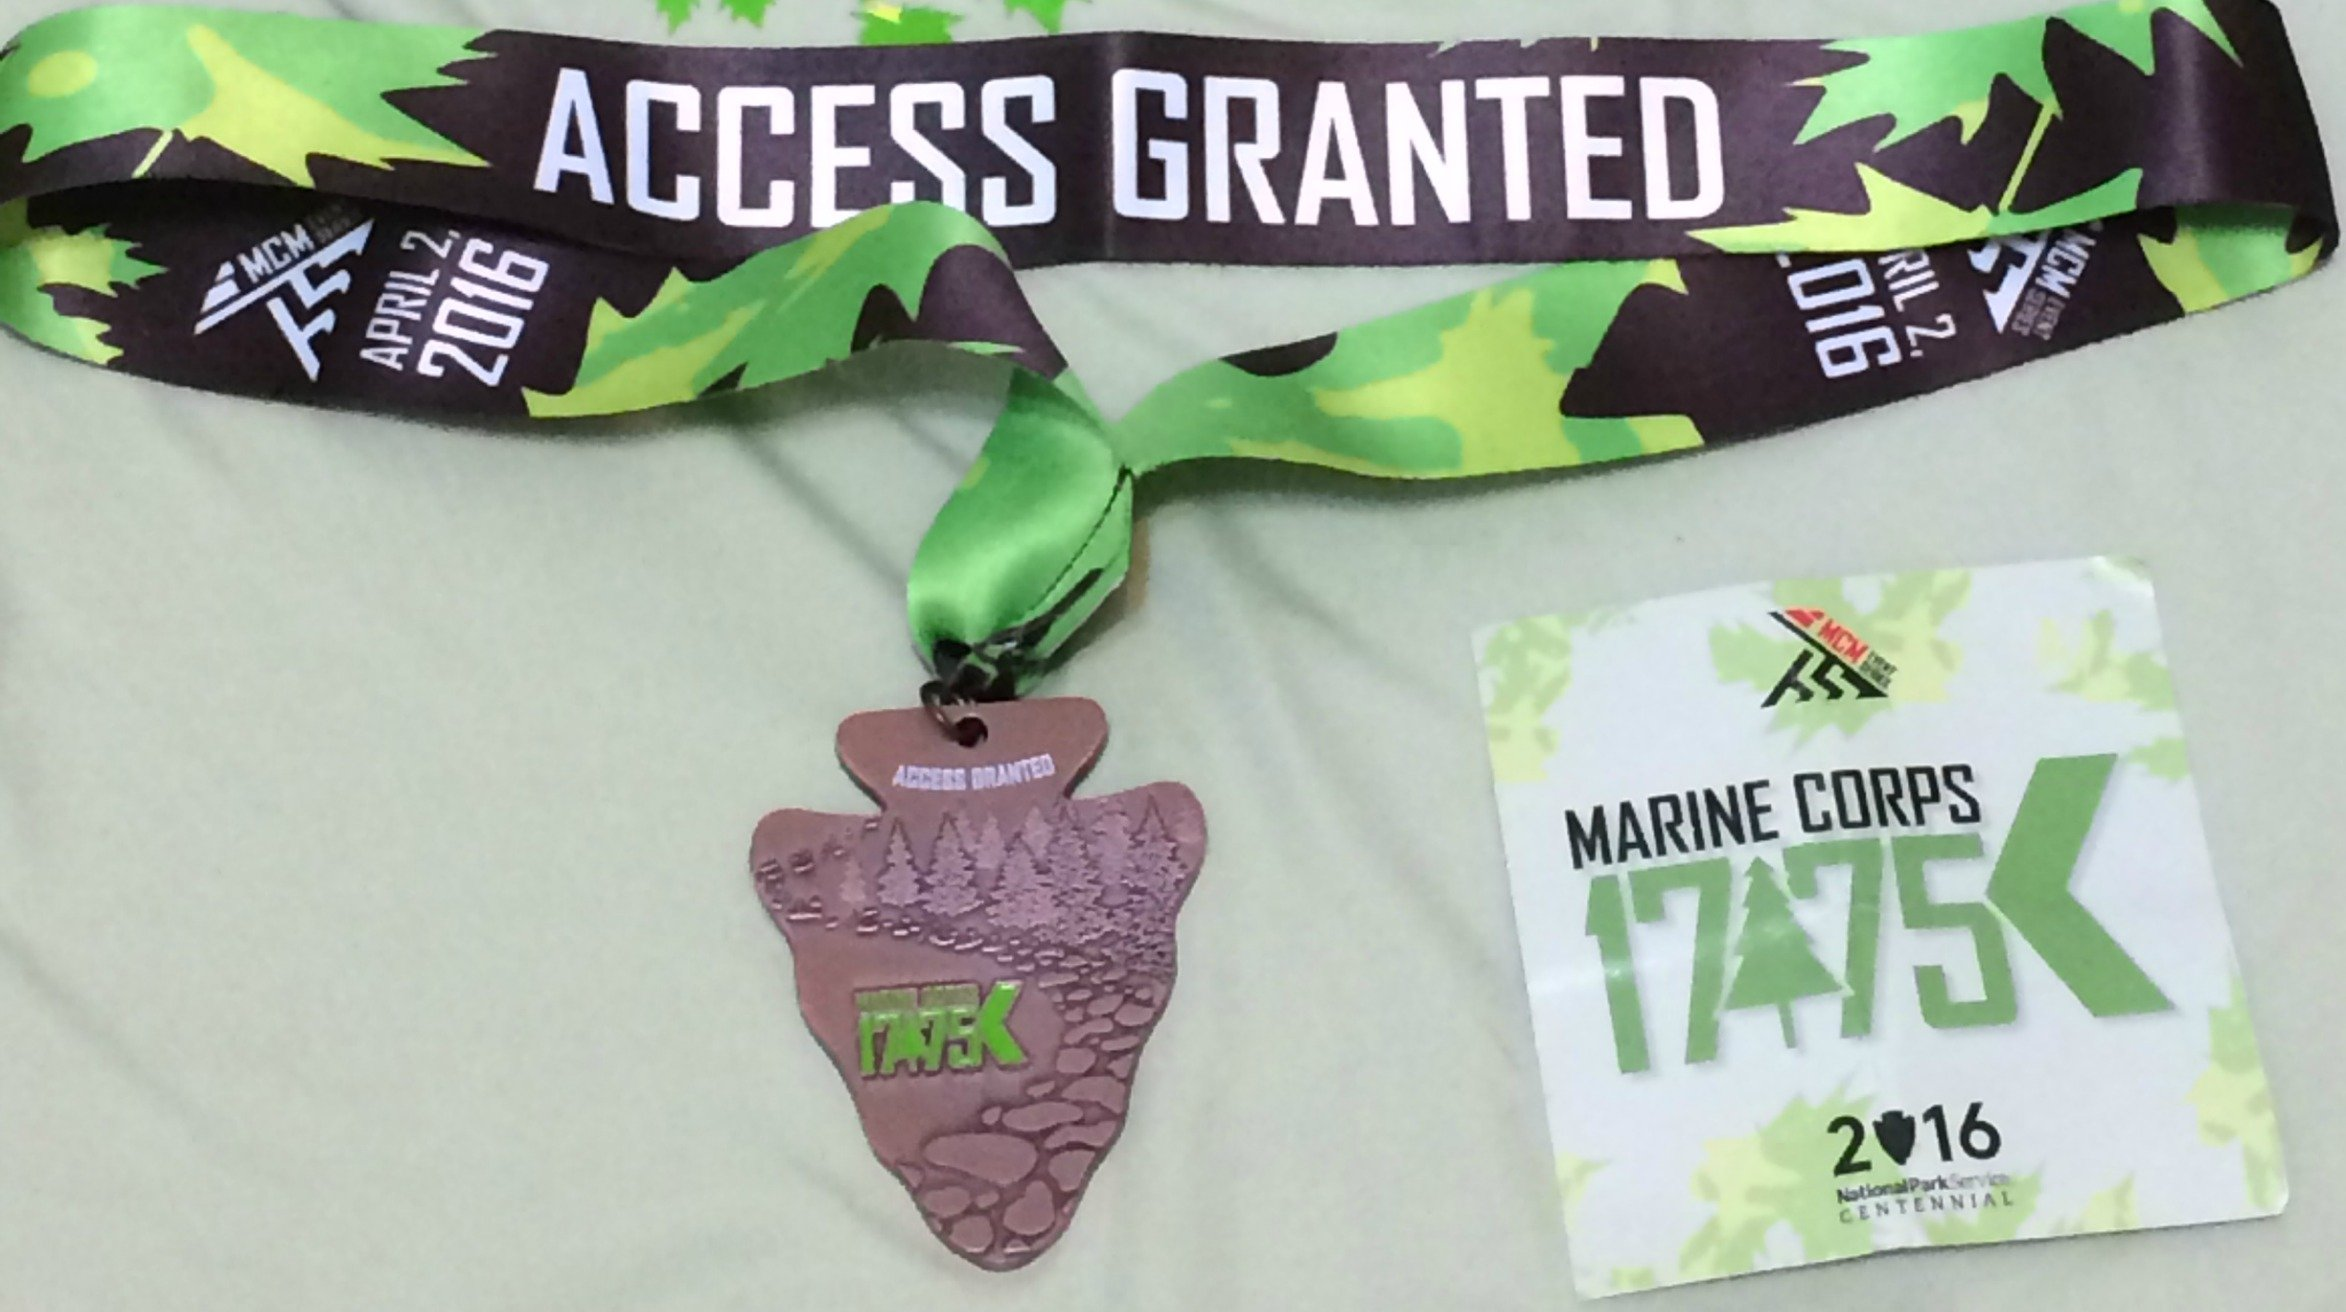 17.75 access granted medal